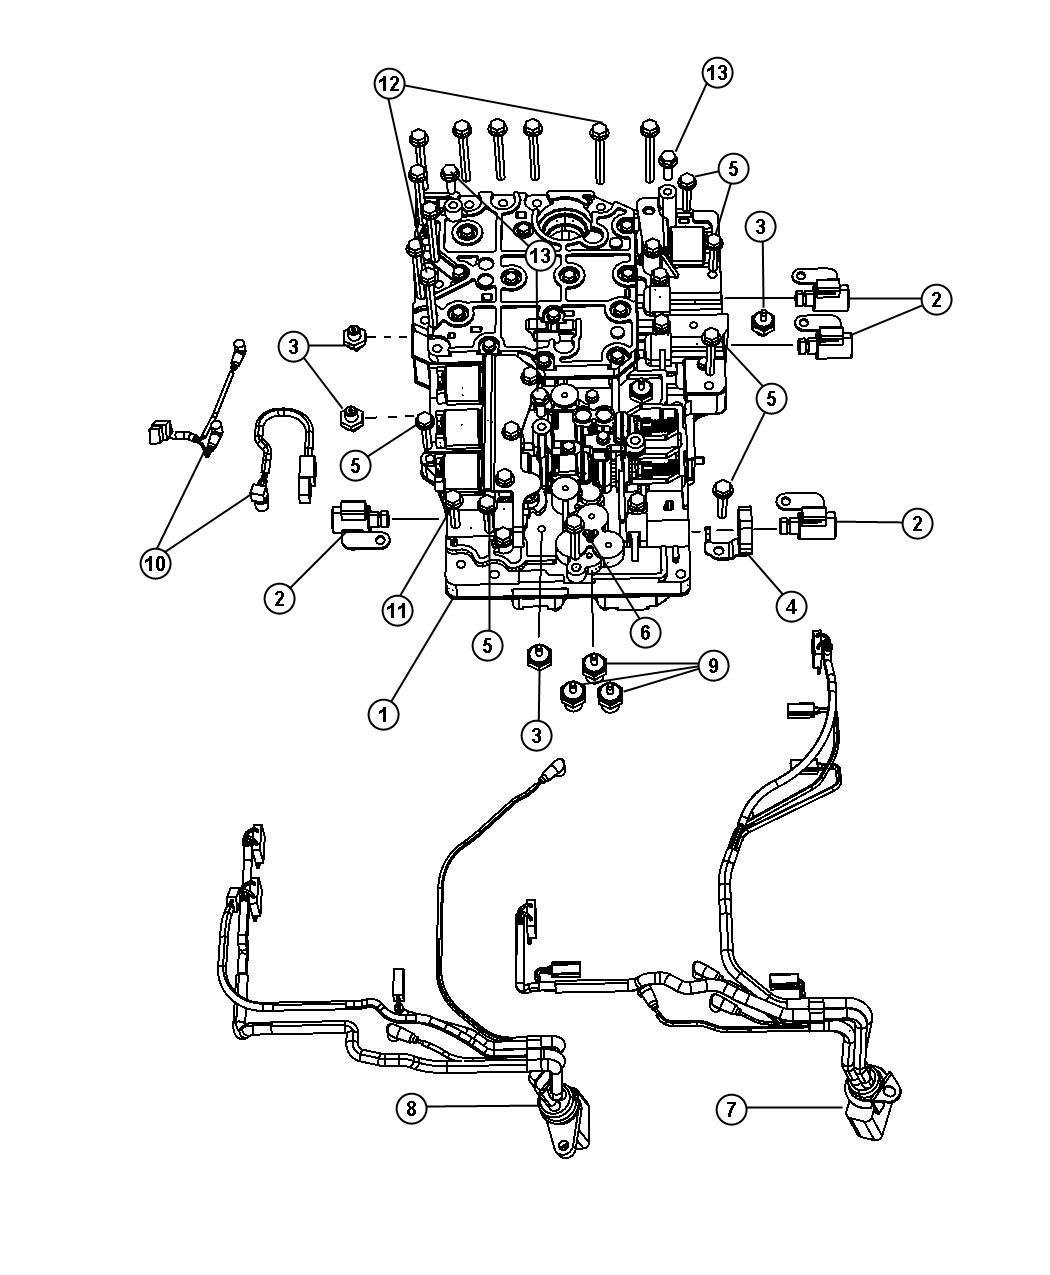 700r4 wiring diagram 4 pin